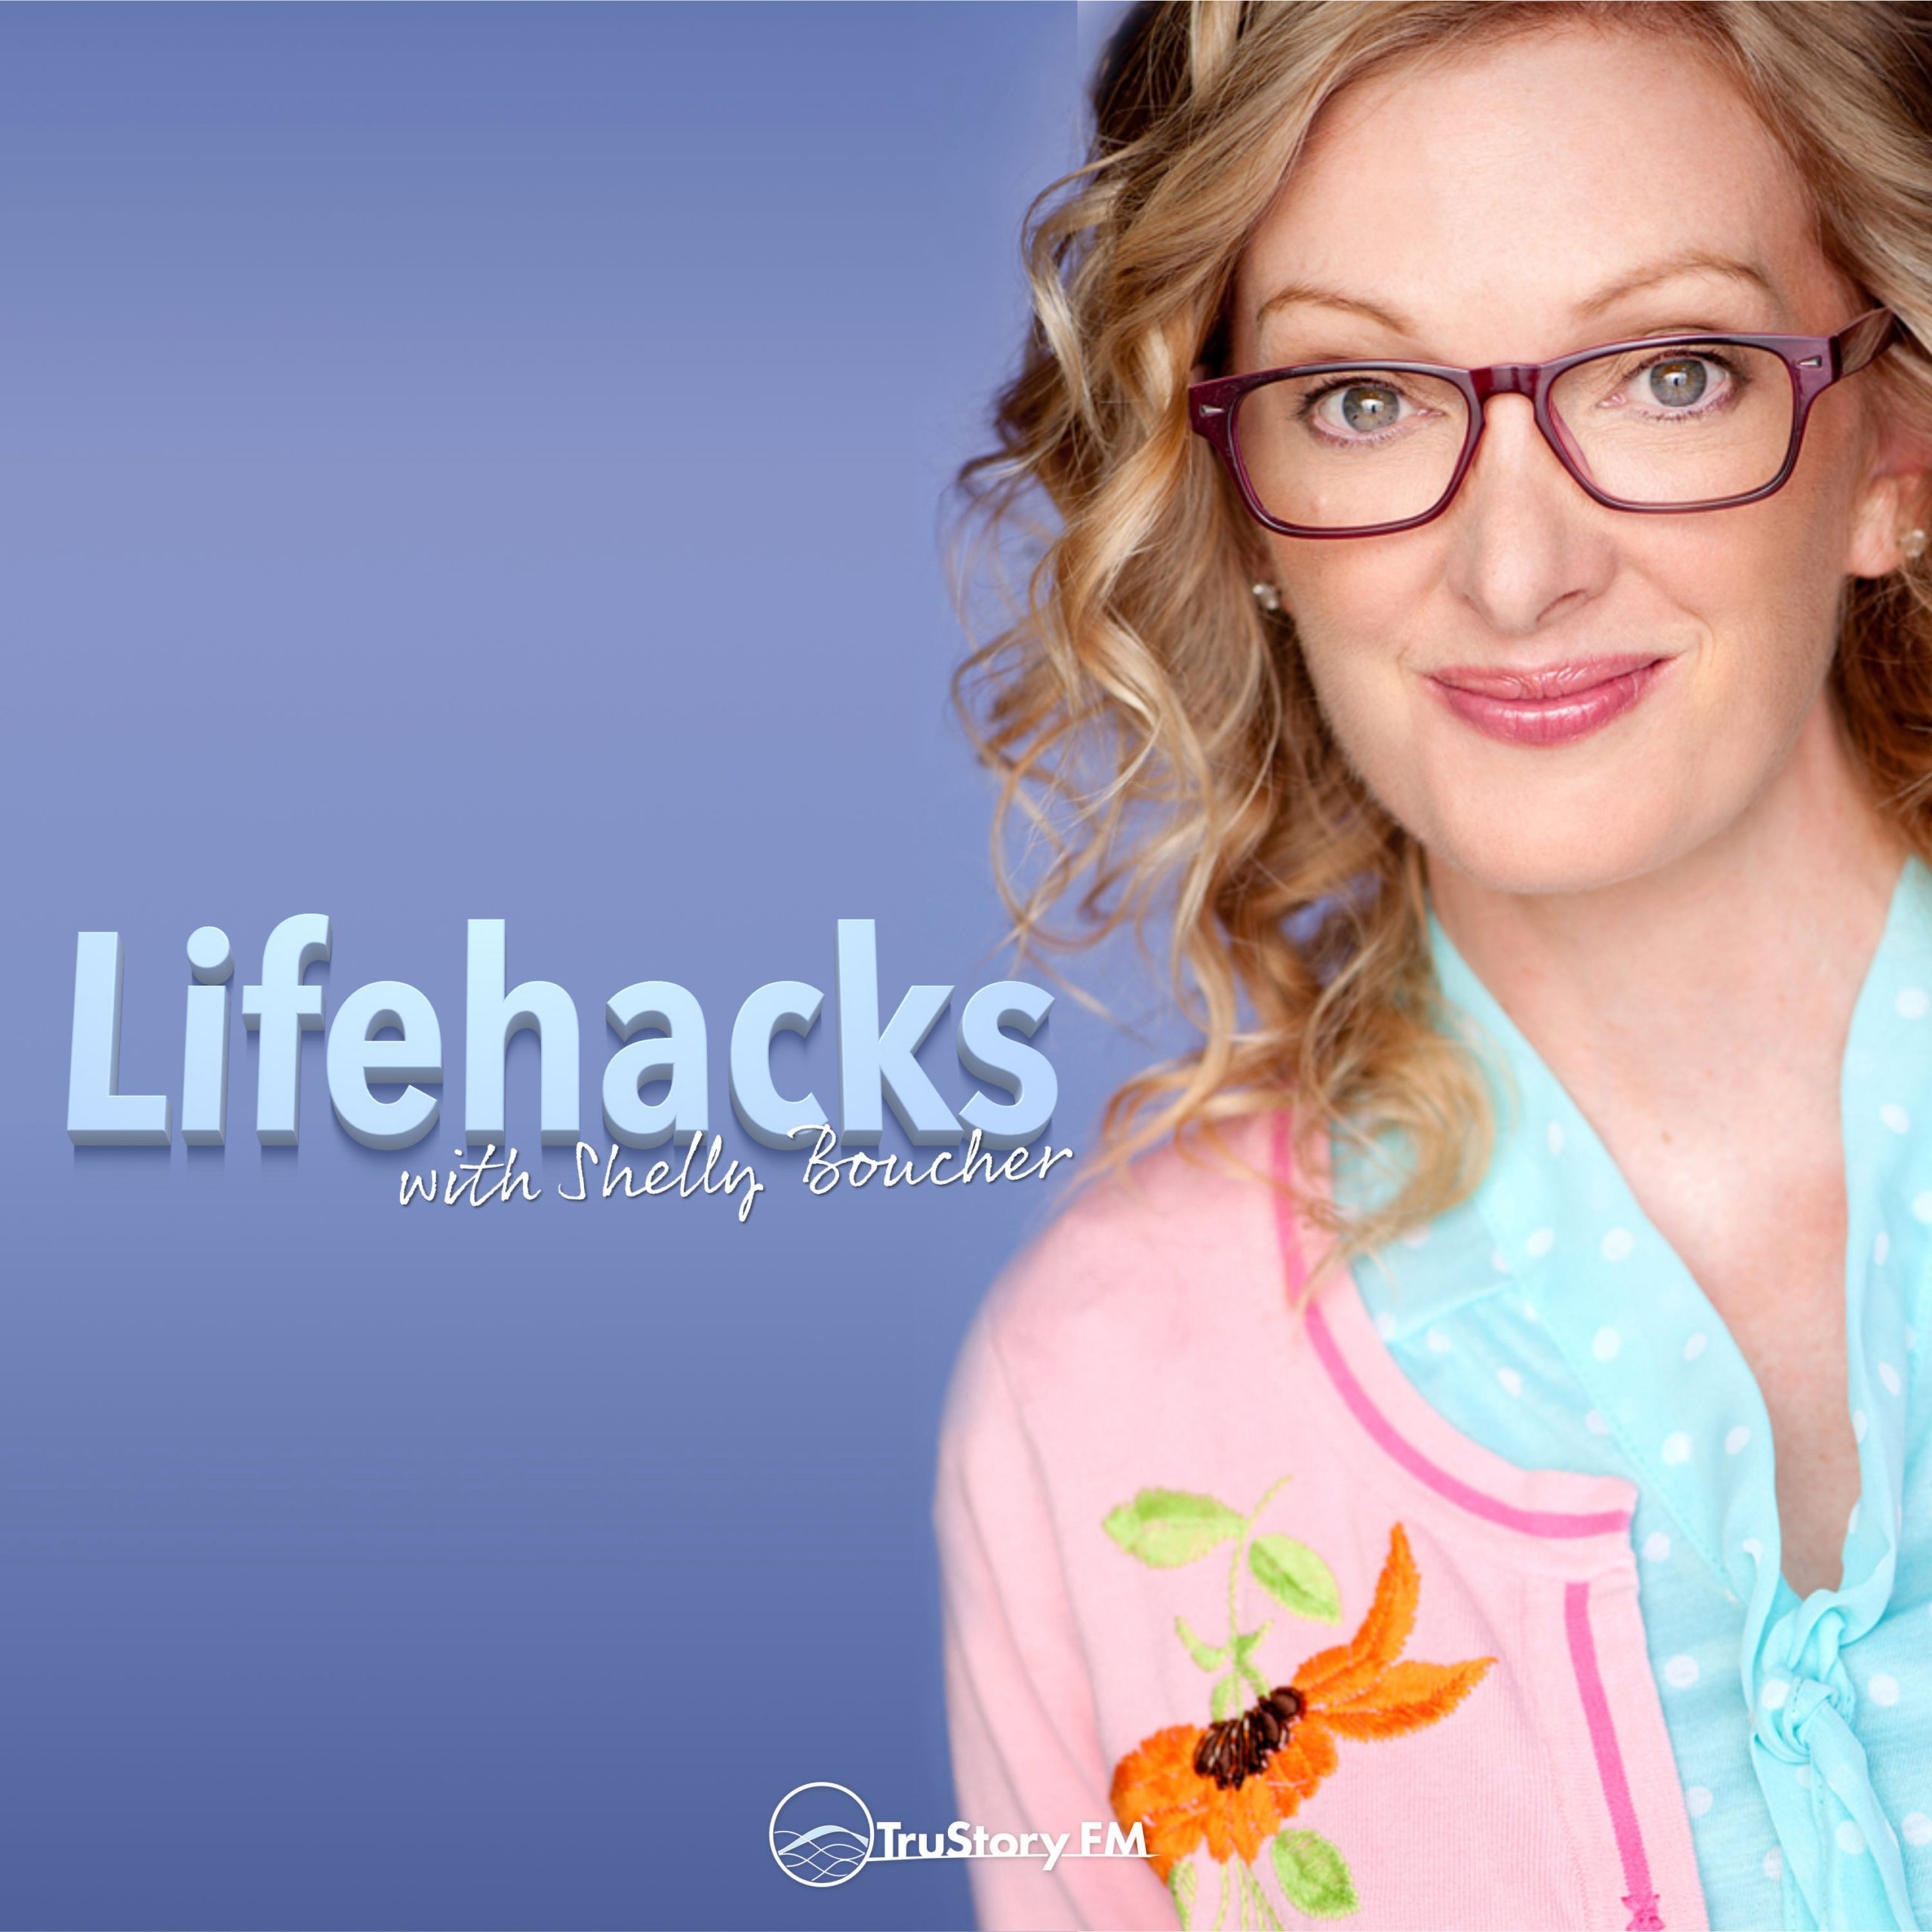 Lifehacks with Shelly Boucher